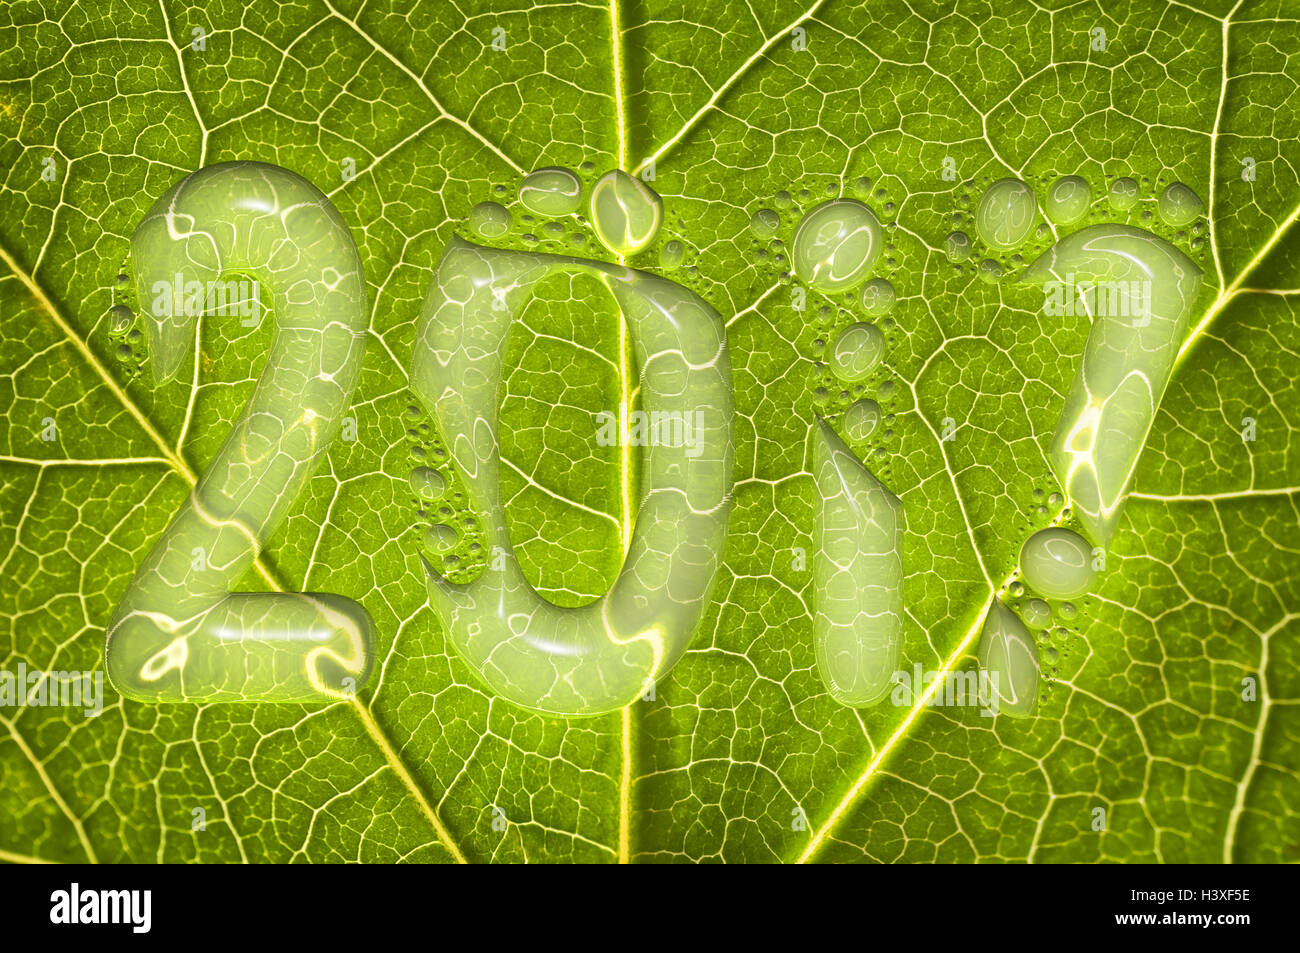 2017, rain drops on a green leaf background, 2017 new year environment concept - Stock Image